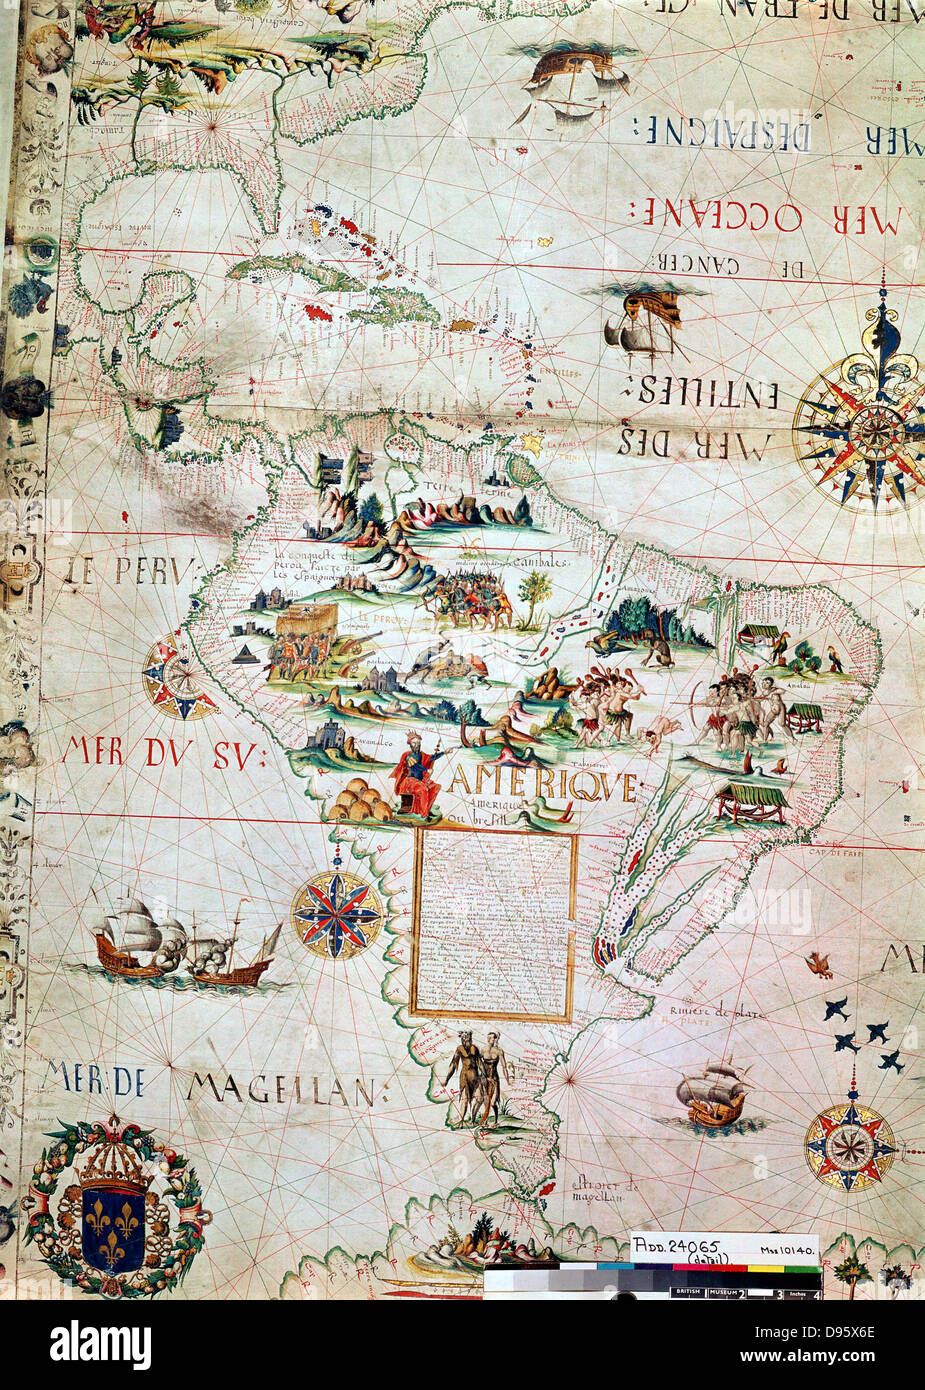 French map of Central and South America, showing Florida, Gulf of ...